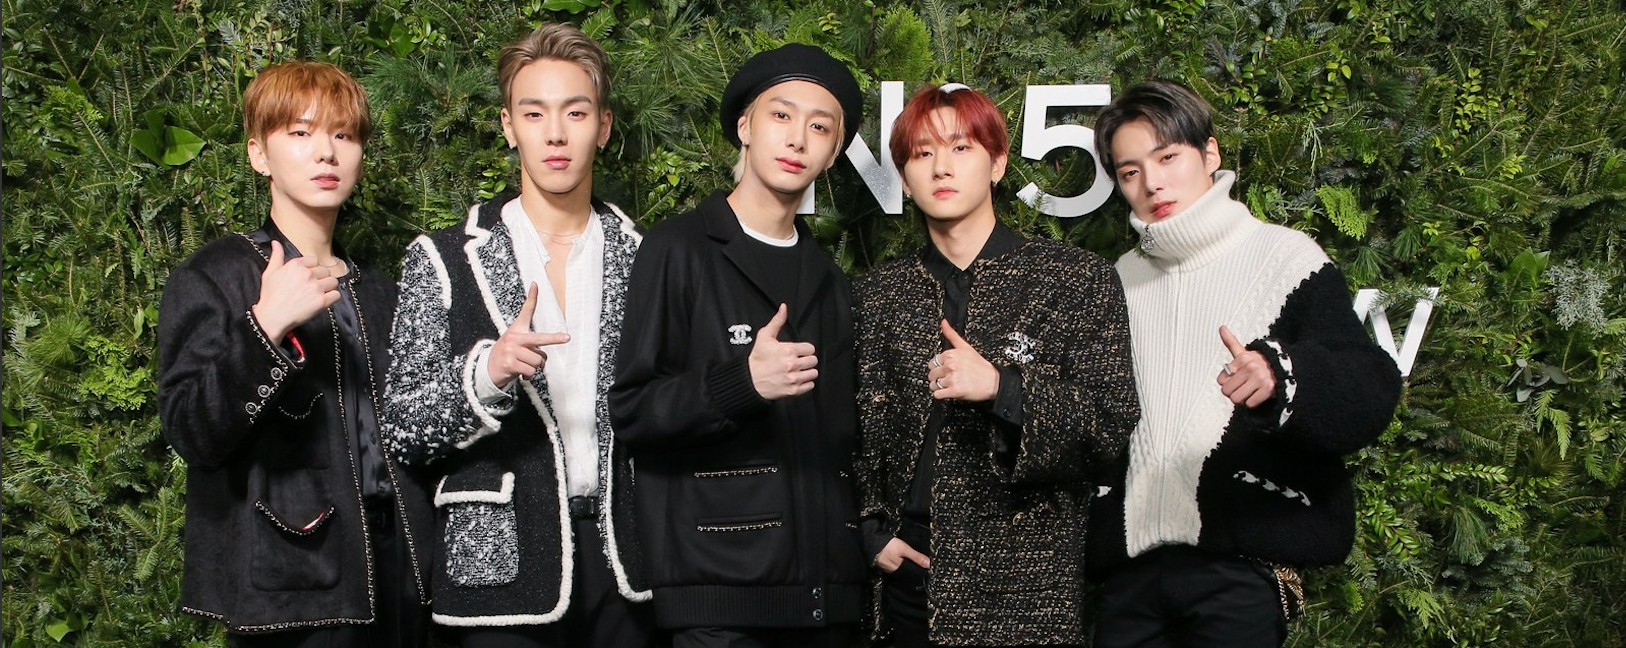 MONSTA X performed at the 'CHANEL No. 5 In The Snow' evening in New York - Kpopshop